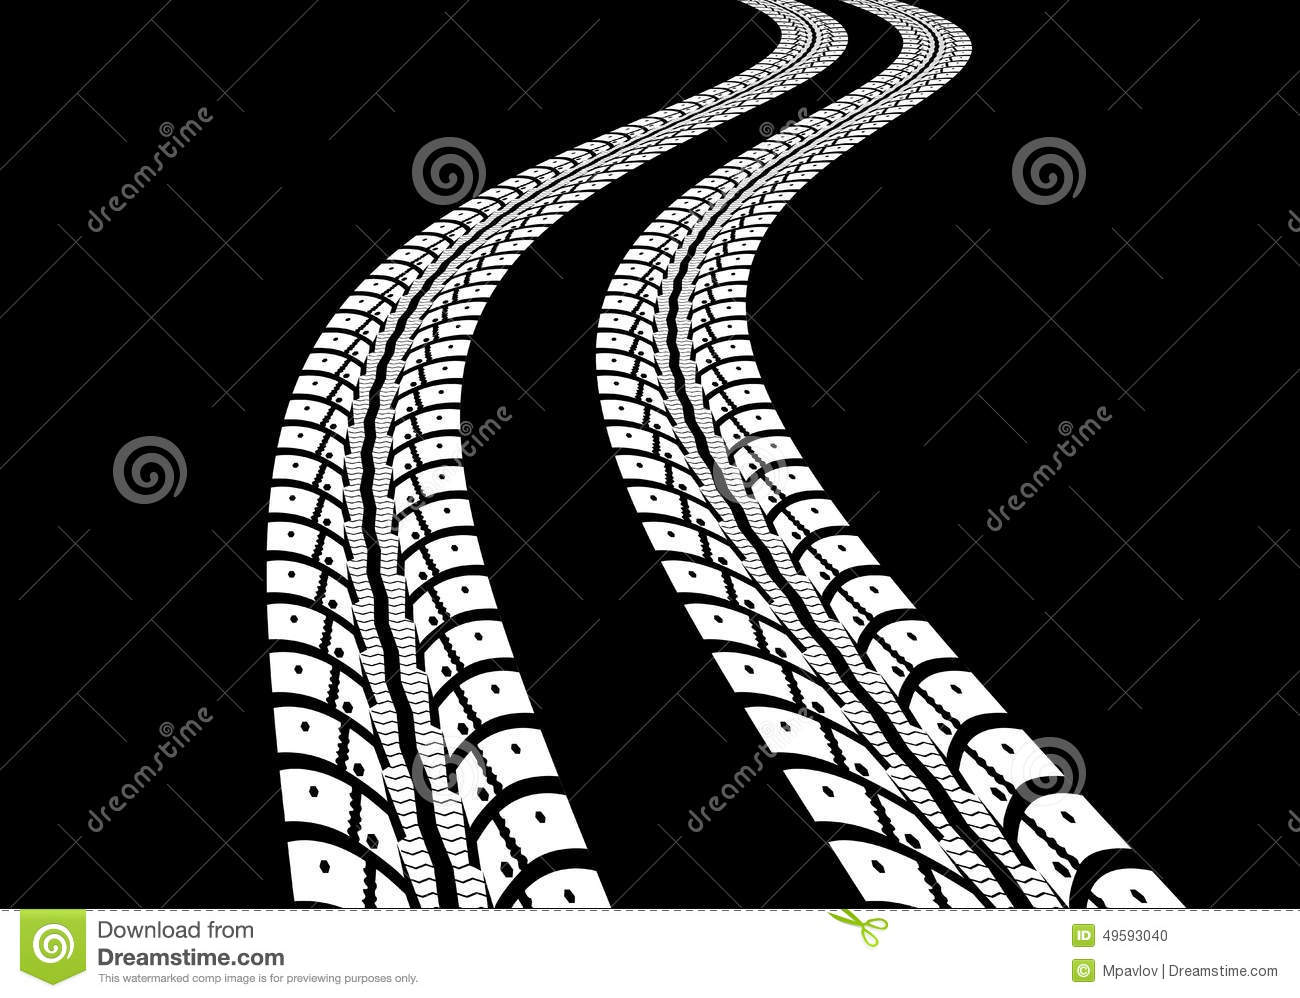 161647545408 also Warehouse Clipart additionally Race Car 8284344 likewise F1 Clipart High Resolution furthermore Stock Illustration Tire Tracks Vector Illustration Black Background Image49593040. on race car silhouette clip art